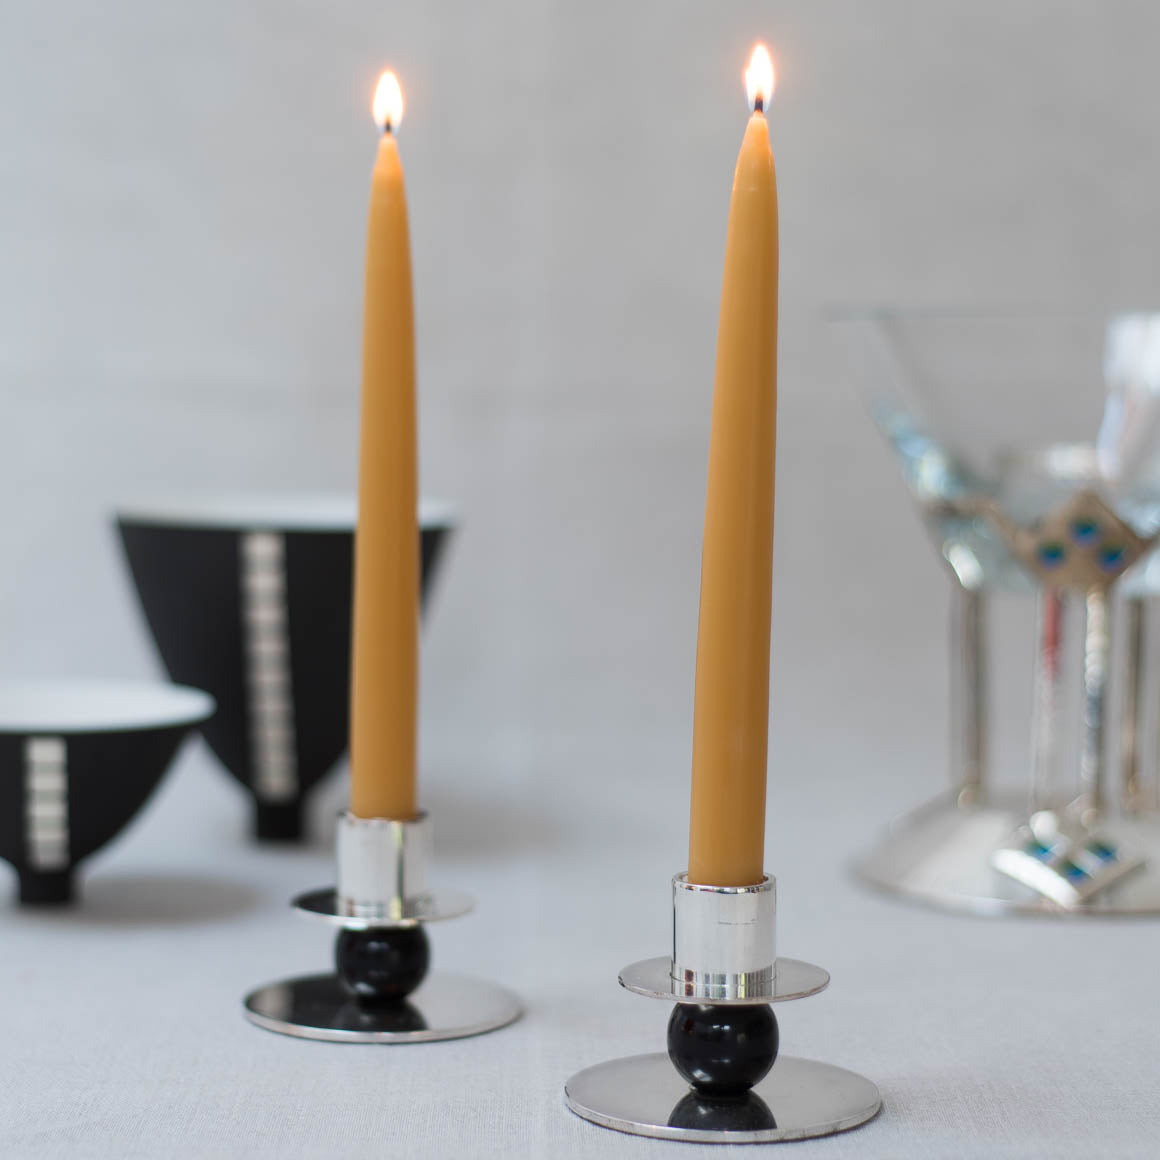 Beeswax dinner candle pair dipped